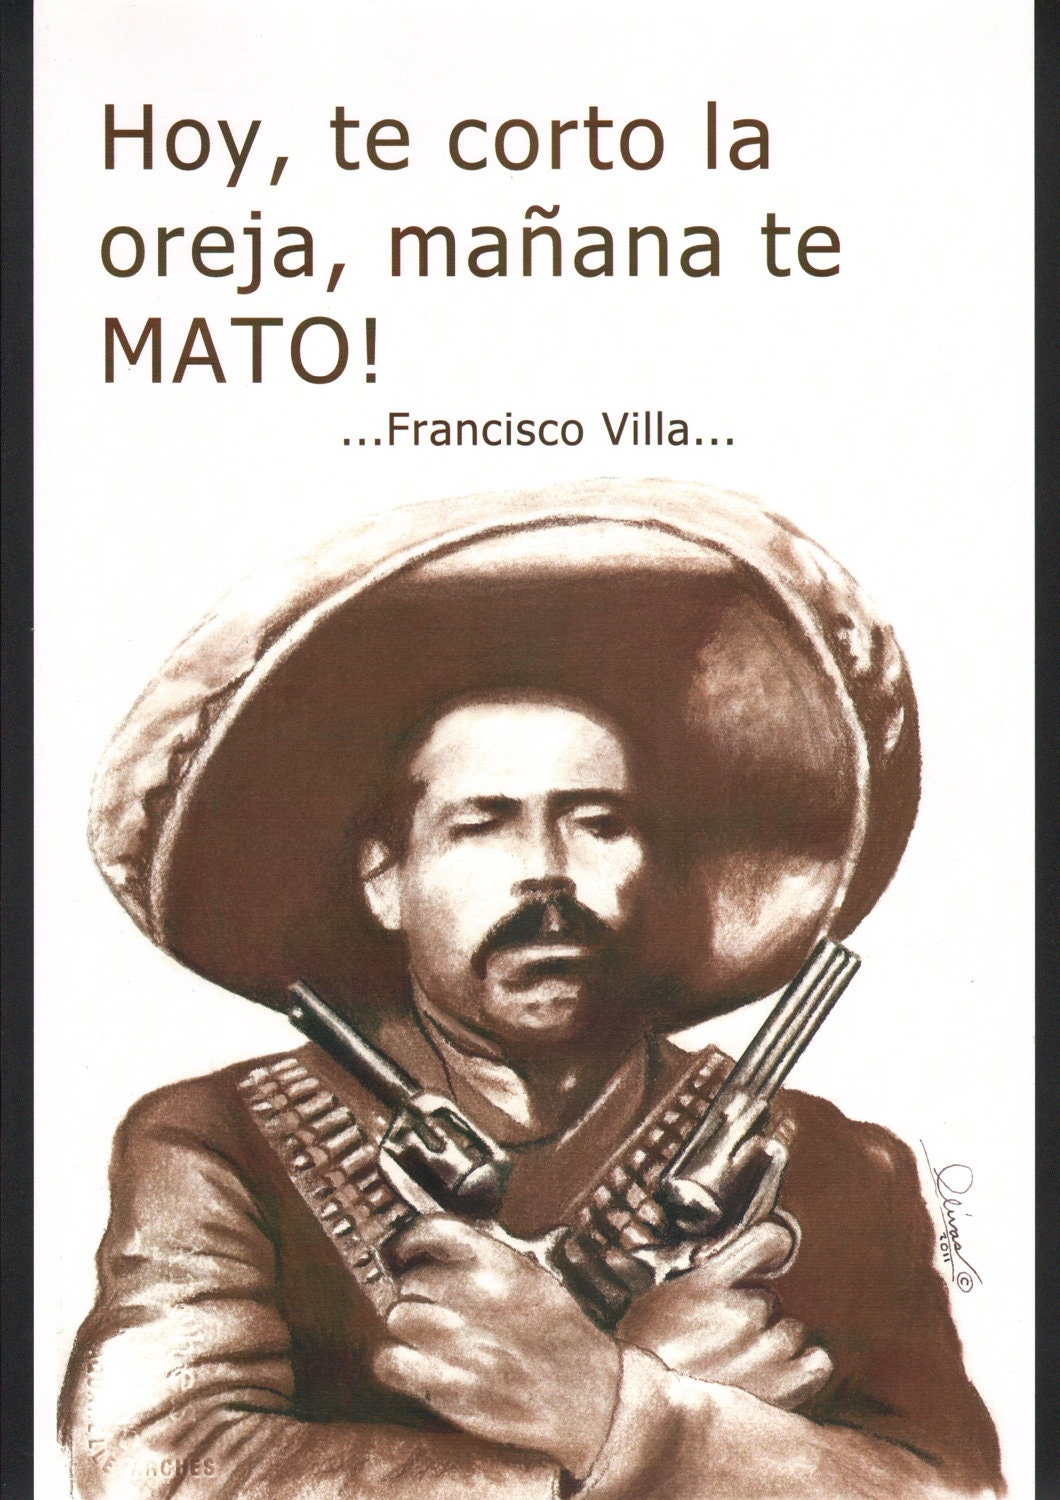 pancho villas leadership essay Francisco pancho villa was a mexican revolutionary general and one of the  most prominent  villa then fought his erstwhile leader in the coalition against  huerta, first chief of the constitutionalists  villa's political stature at that time  was so high that banks in el paso, texas, accepted his paper pesos at face value.